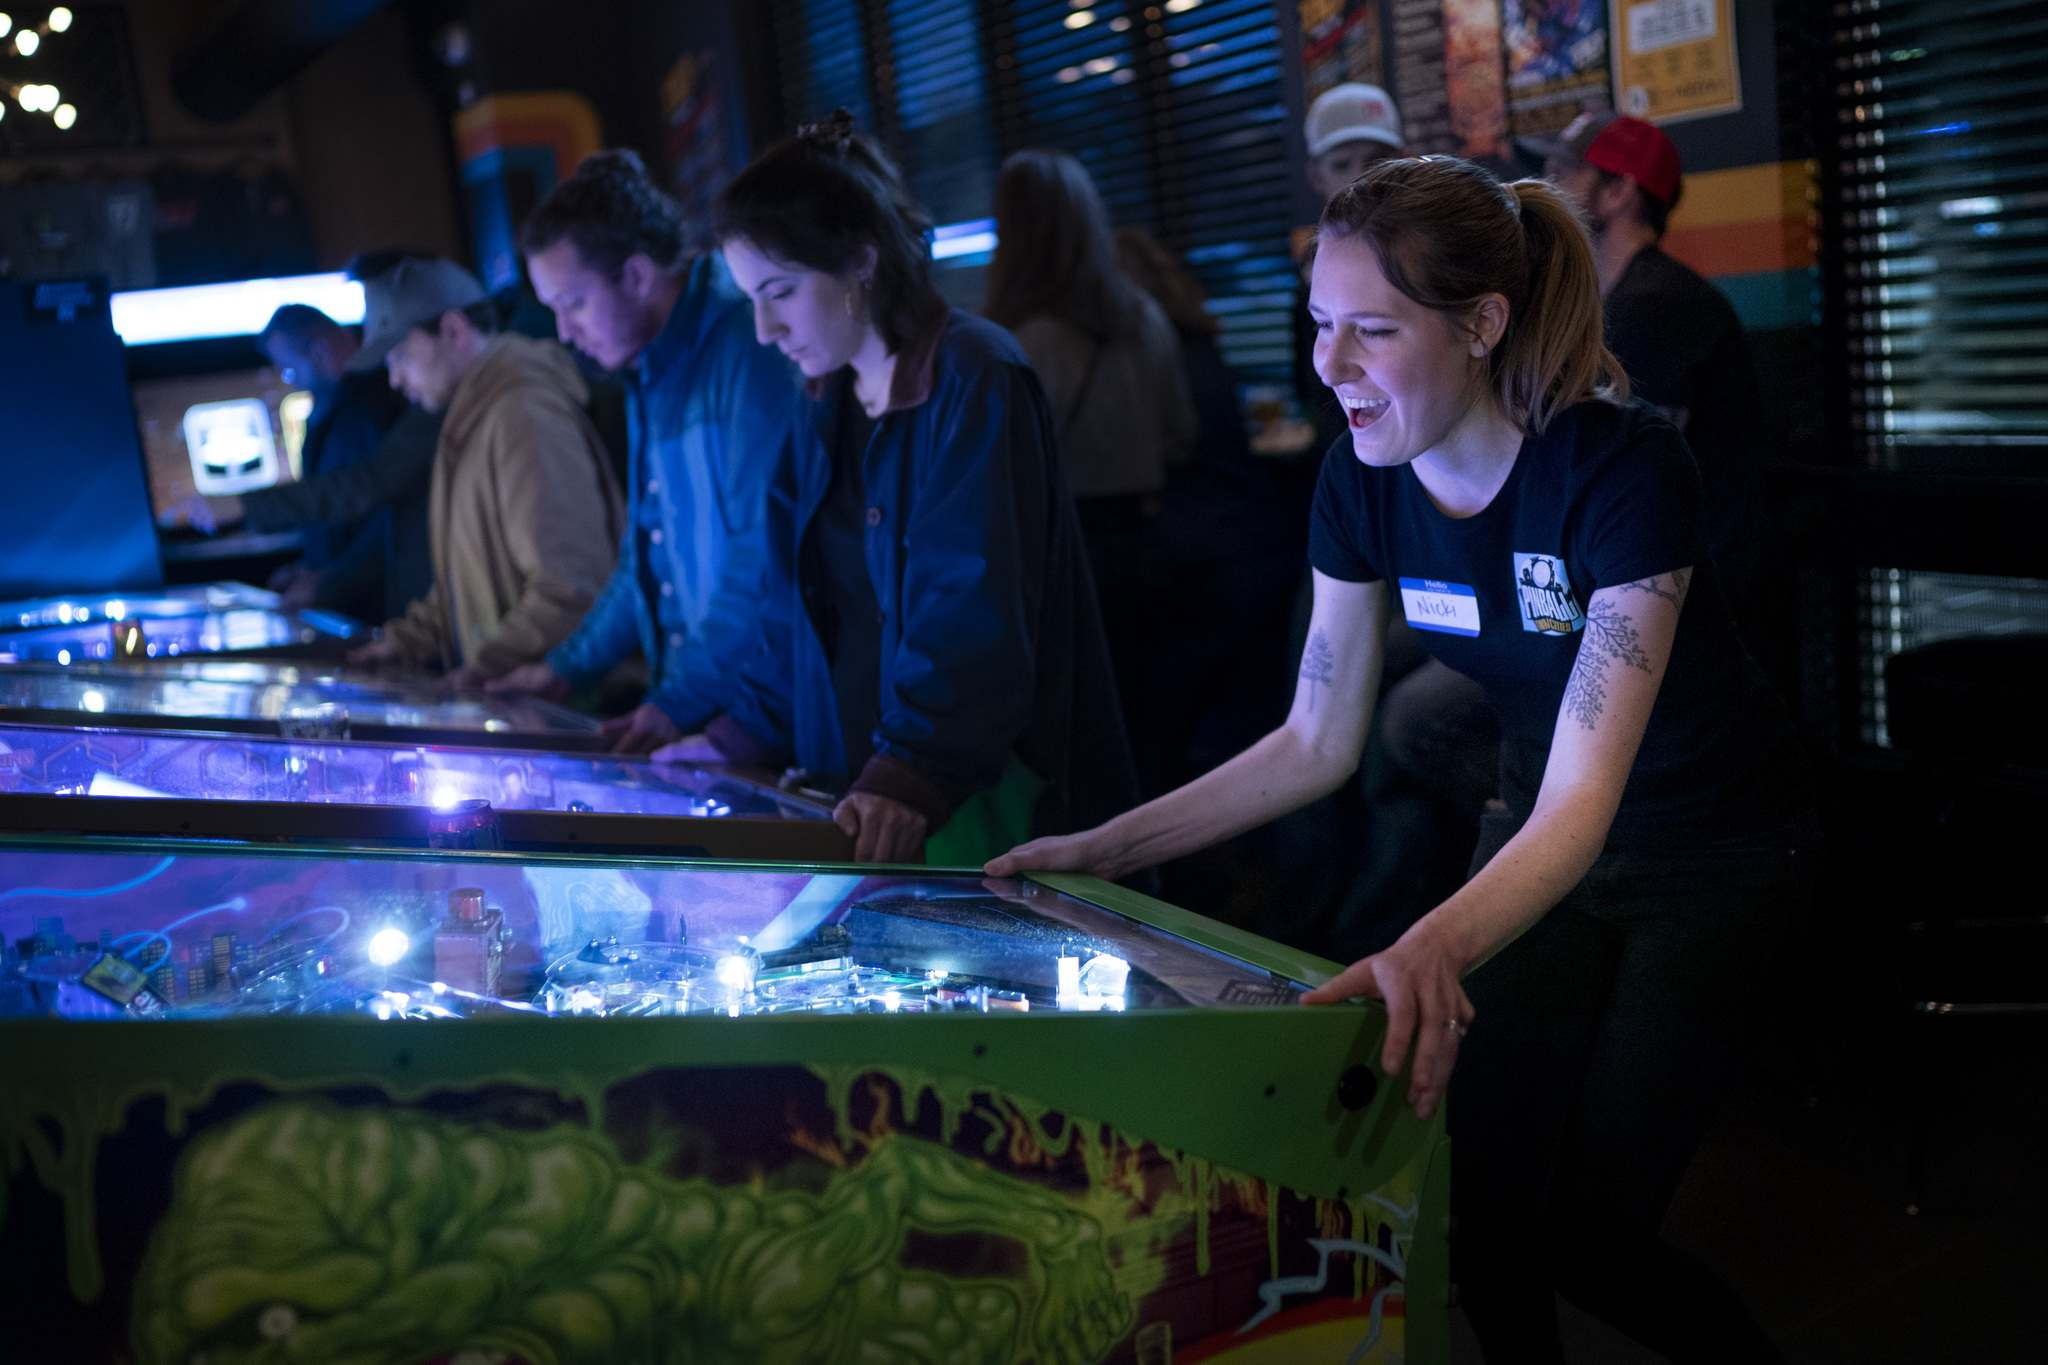 Renee Jones Schneider / Minneapolis Star Tribune</p><p>Nicki Eisenrich is happy to get a high score as she plays a Ghostbusters pinball machine during a women-only pinball tournament at TILT in Minneapolis.</p></p>